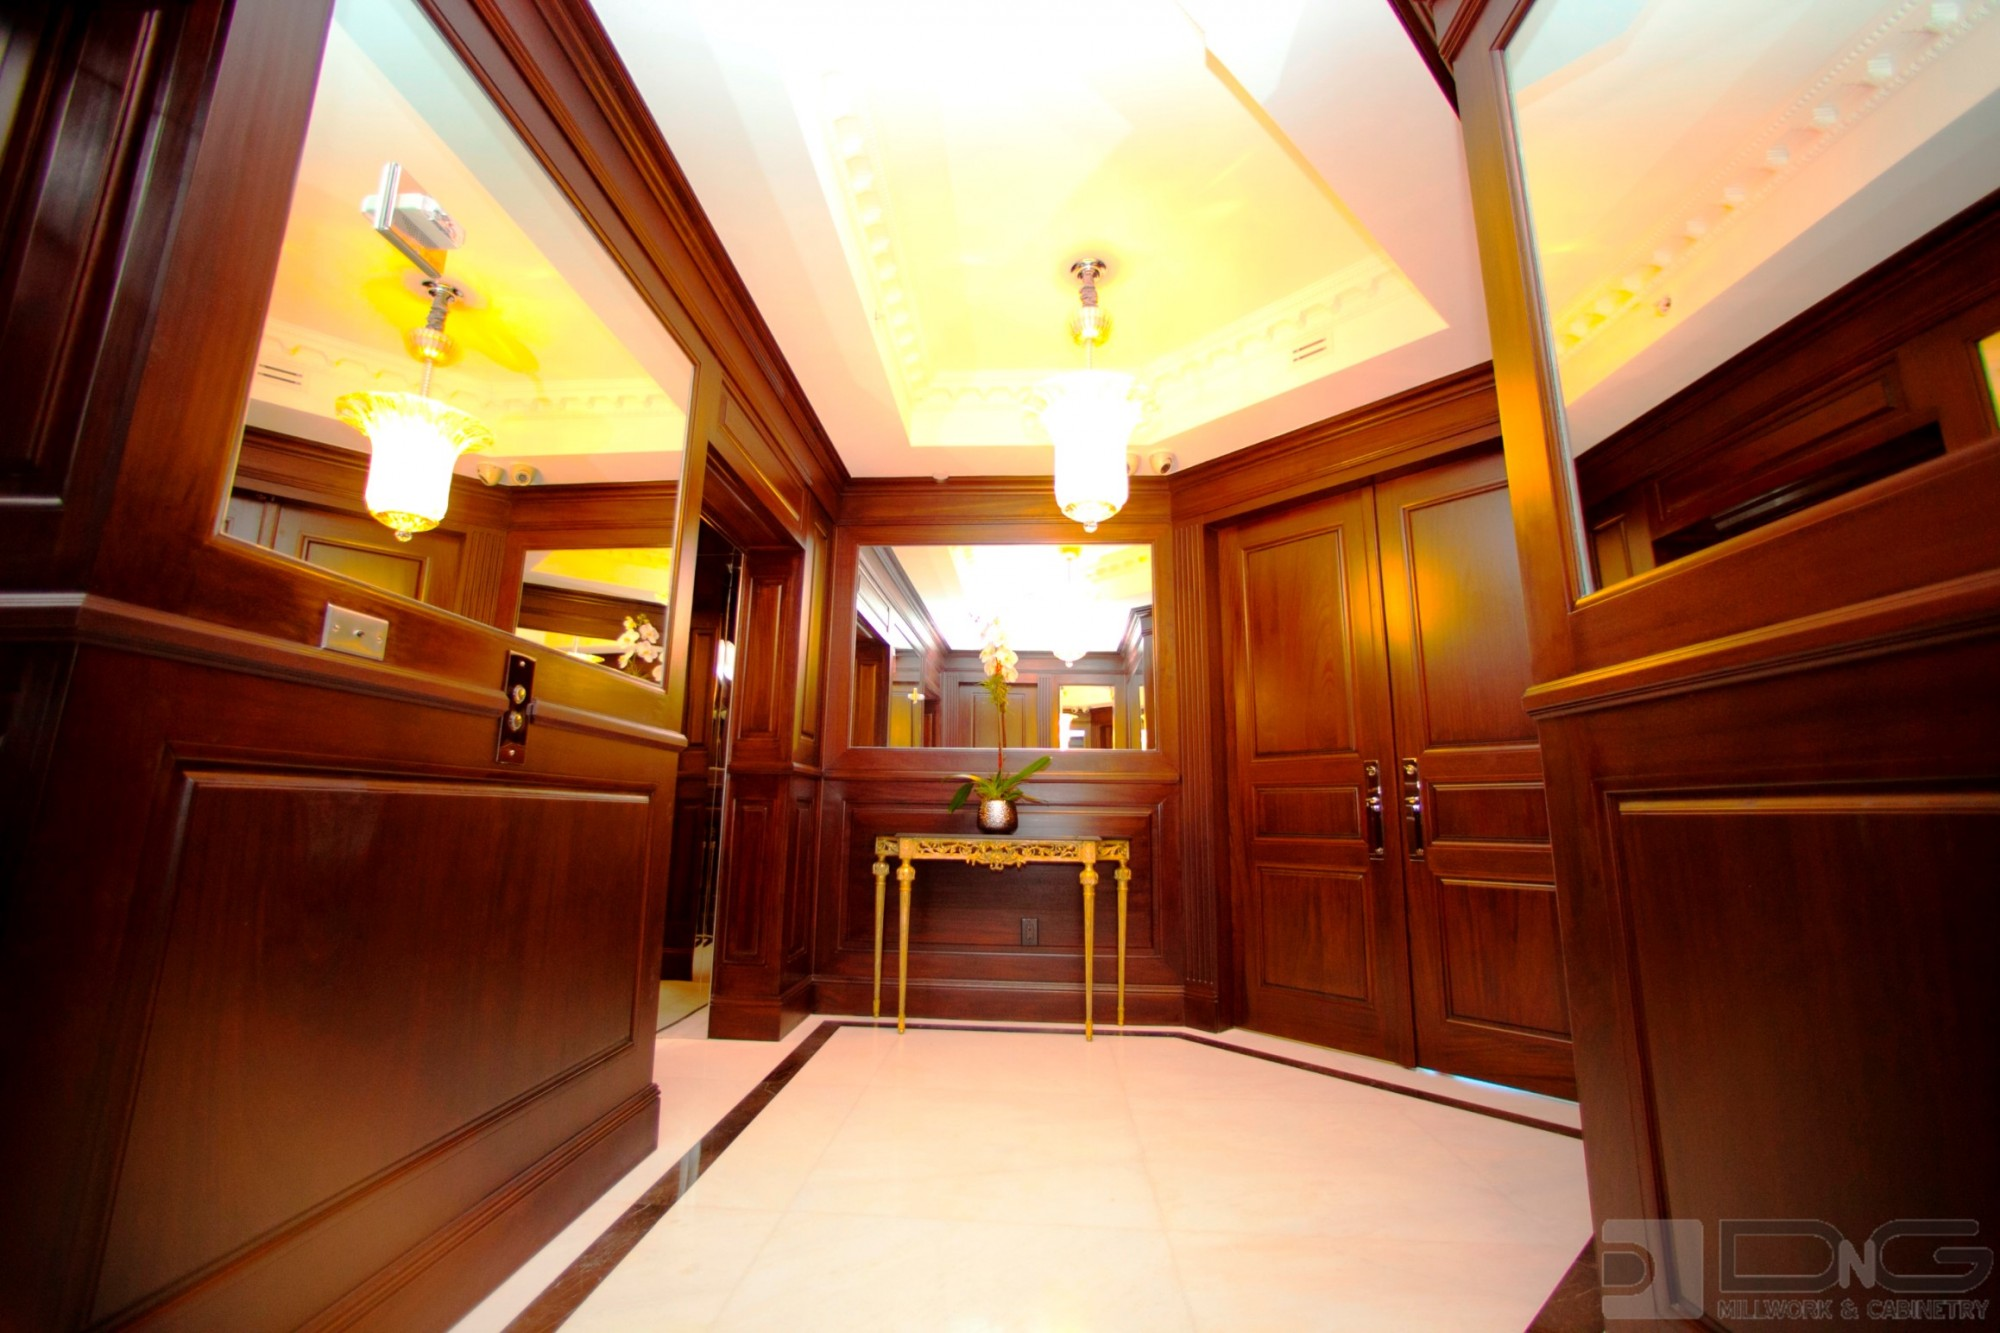 Paneled and Mirror Reception